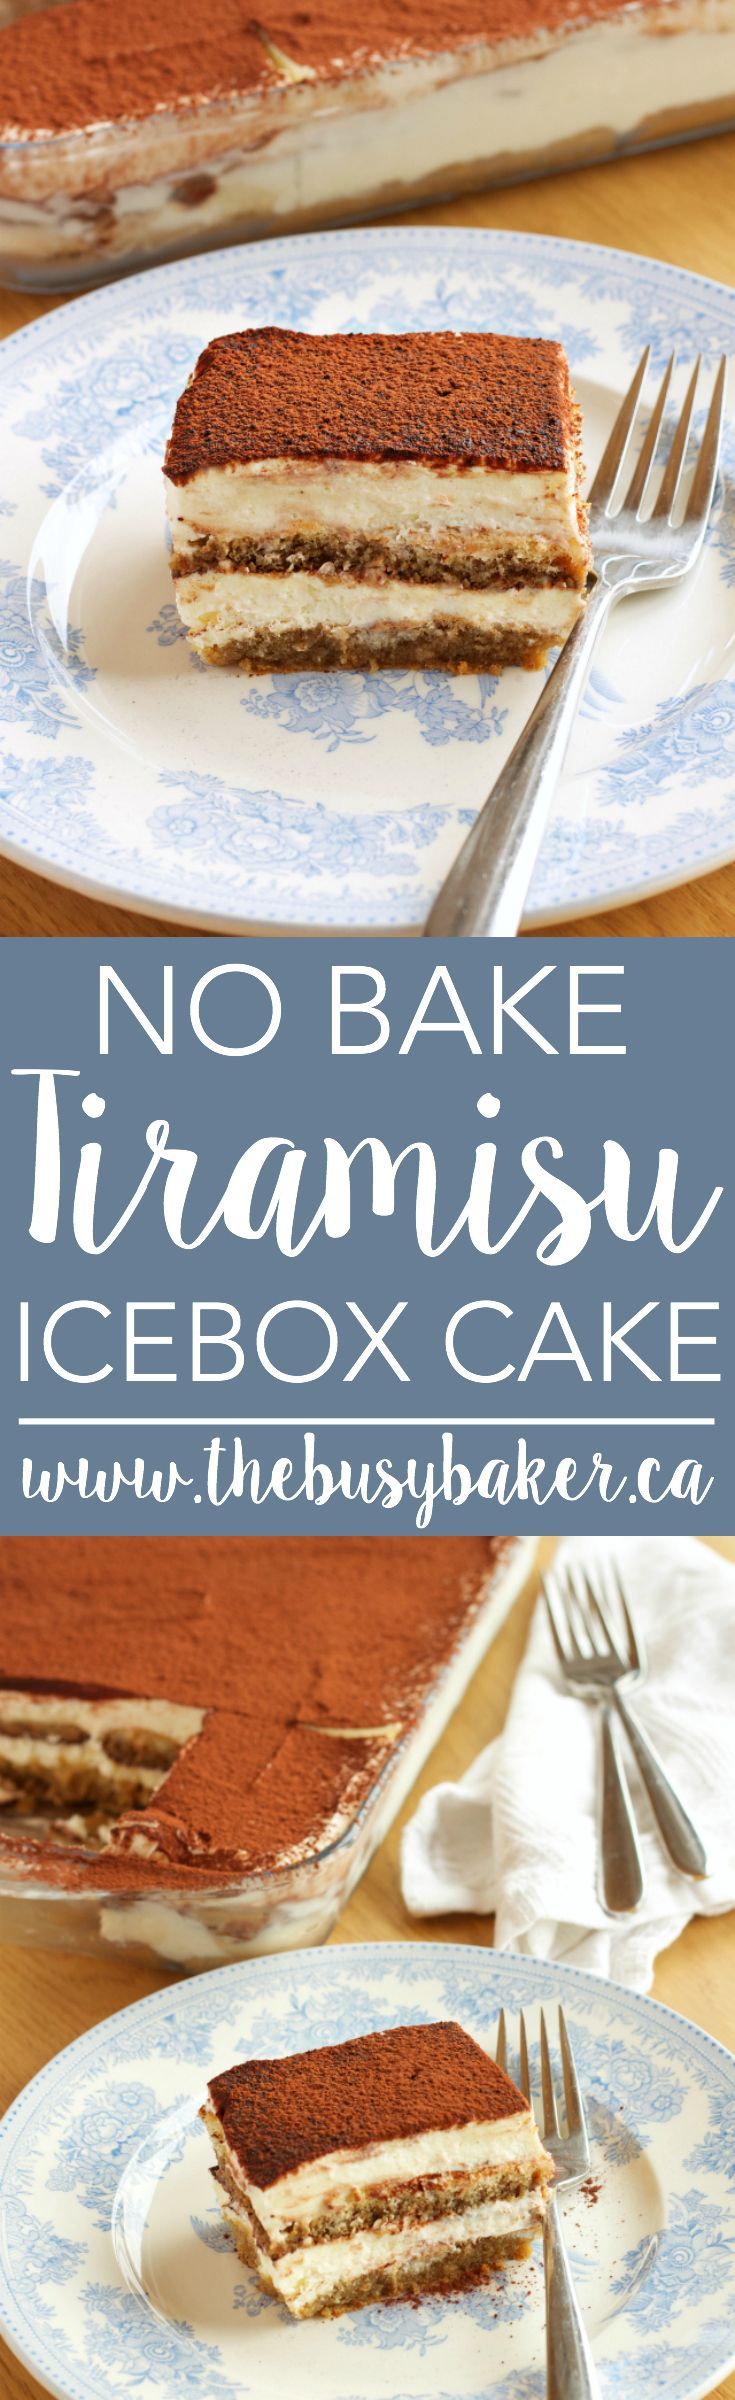 This No Bake Tiramisu Icebox Cake is the easy to make version of a traditional Italian Tiramisu, without raw eggs! Recipe on thebusybaker.ca via @busybakerblog